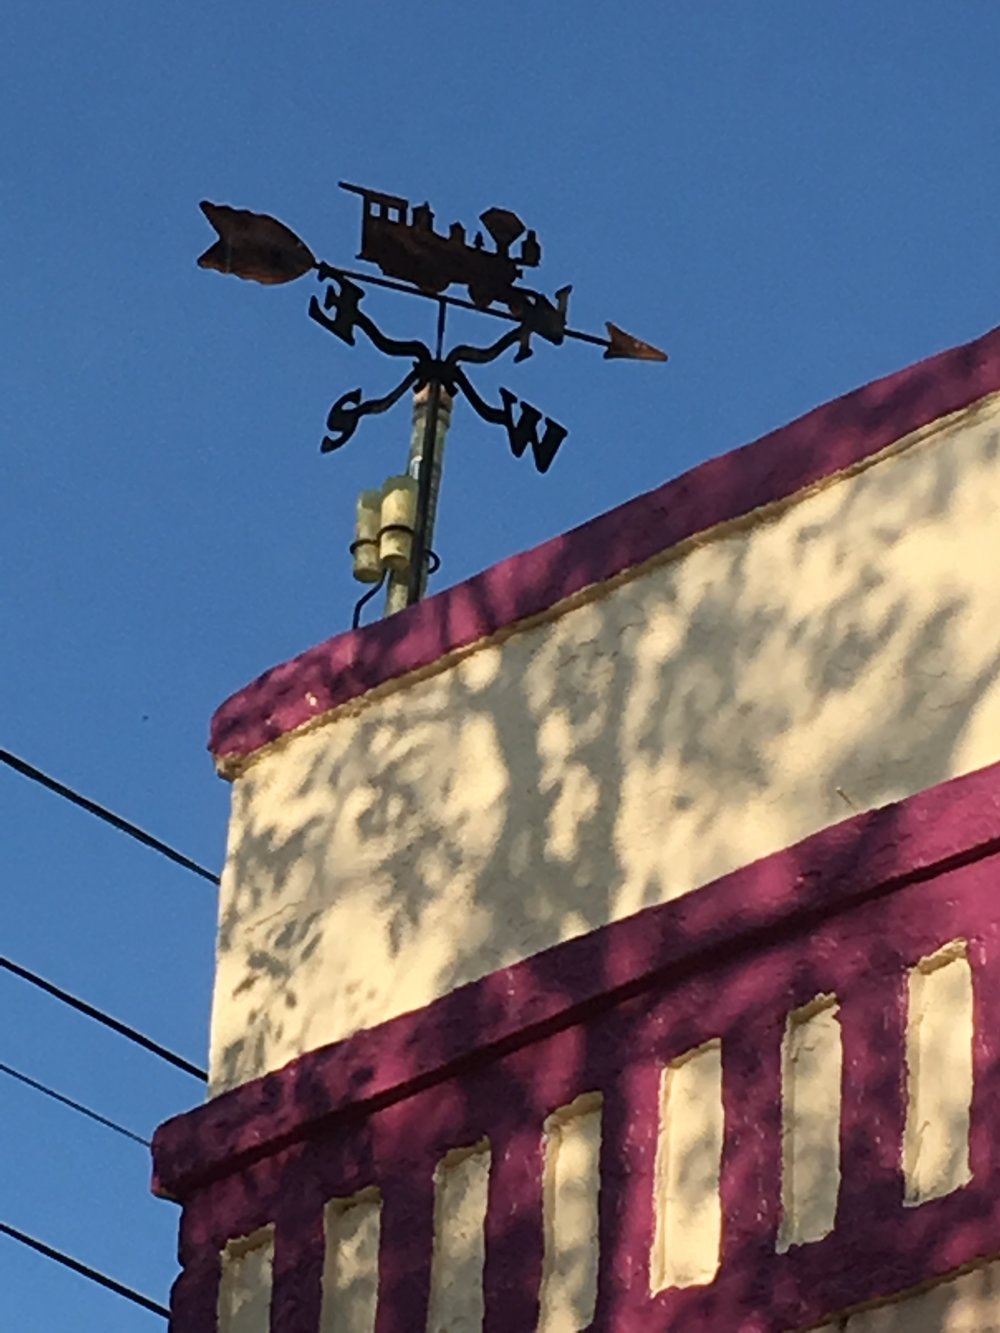 This vane in the Armory Park neighborhood downtown is part of a building with a lot of train motifs. It is also close to the Southern Pacific railroad tracks.